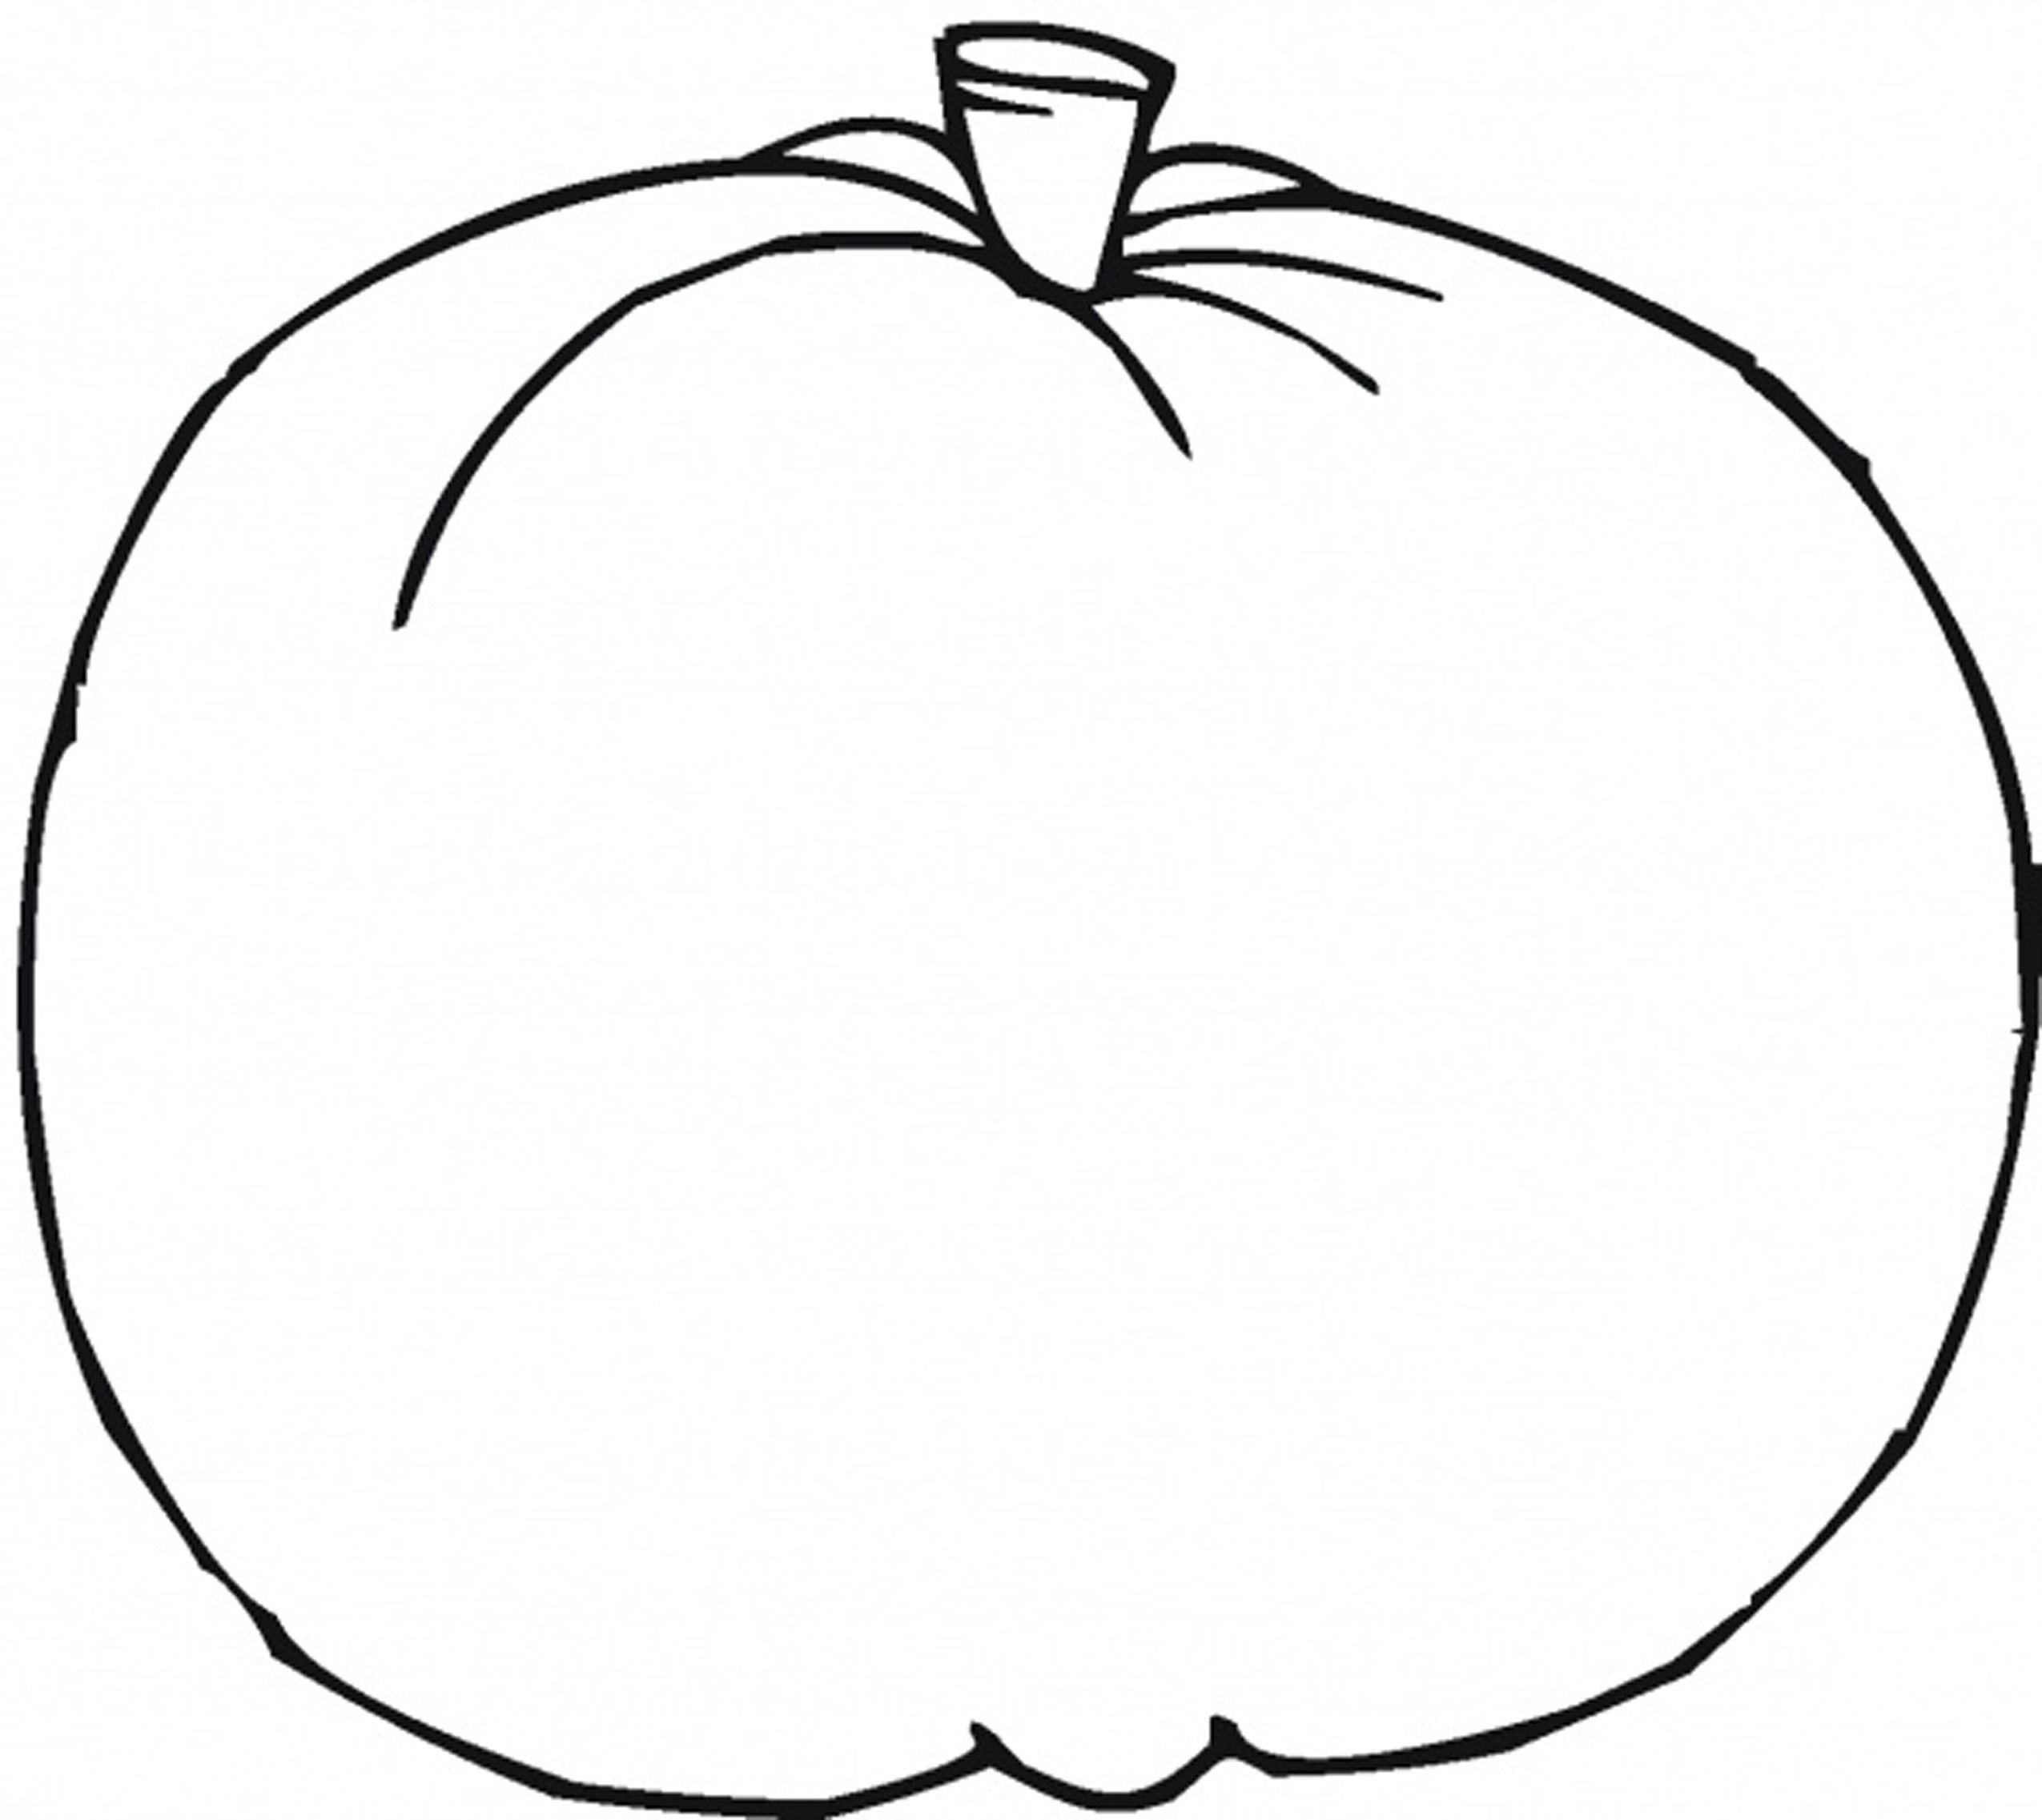 Pumpkin Template Drawing At Getdrawings